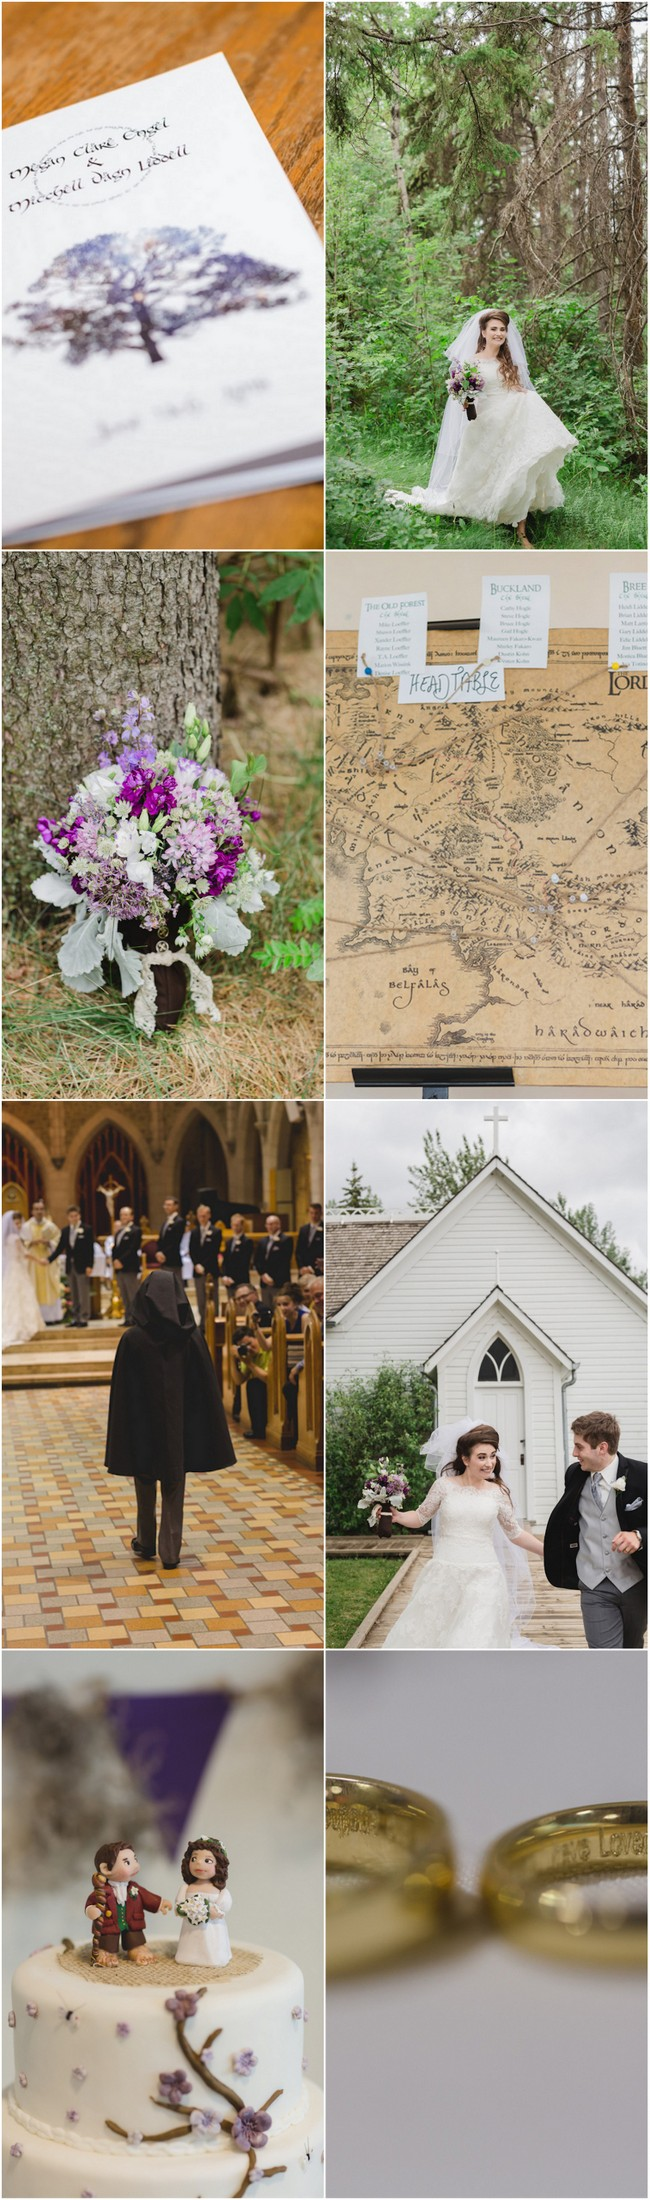 Creative JRR Tolkien Wedding 1